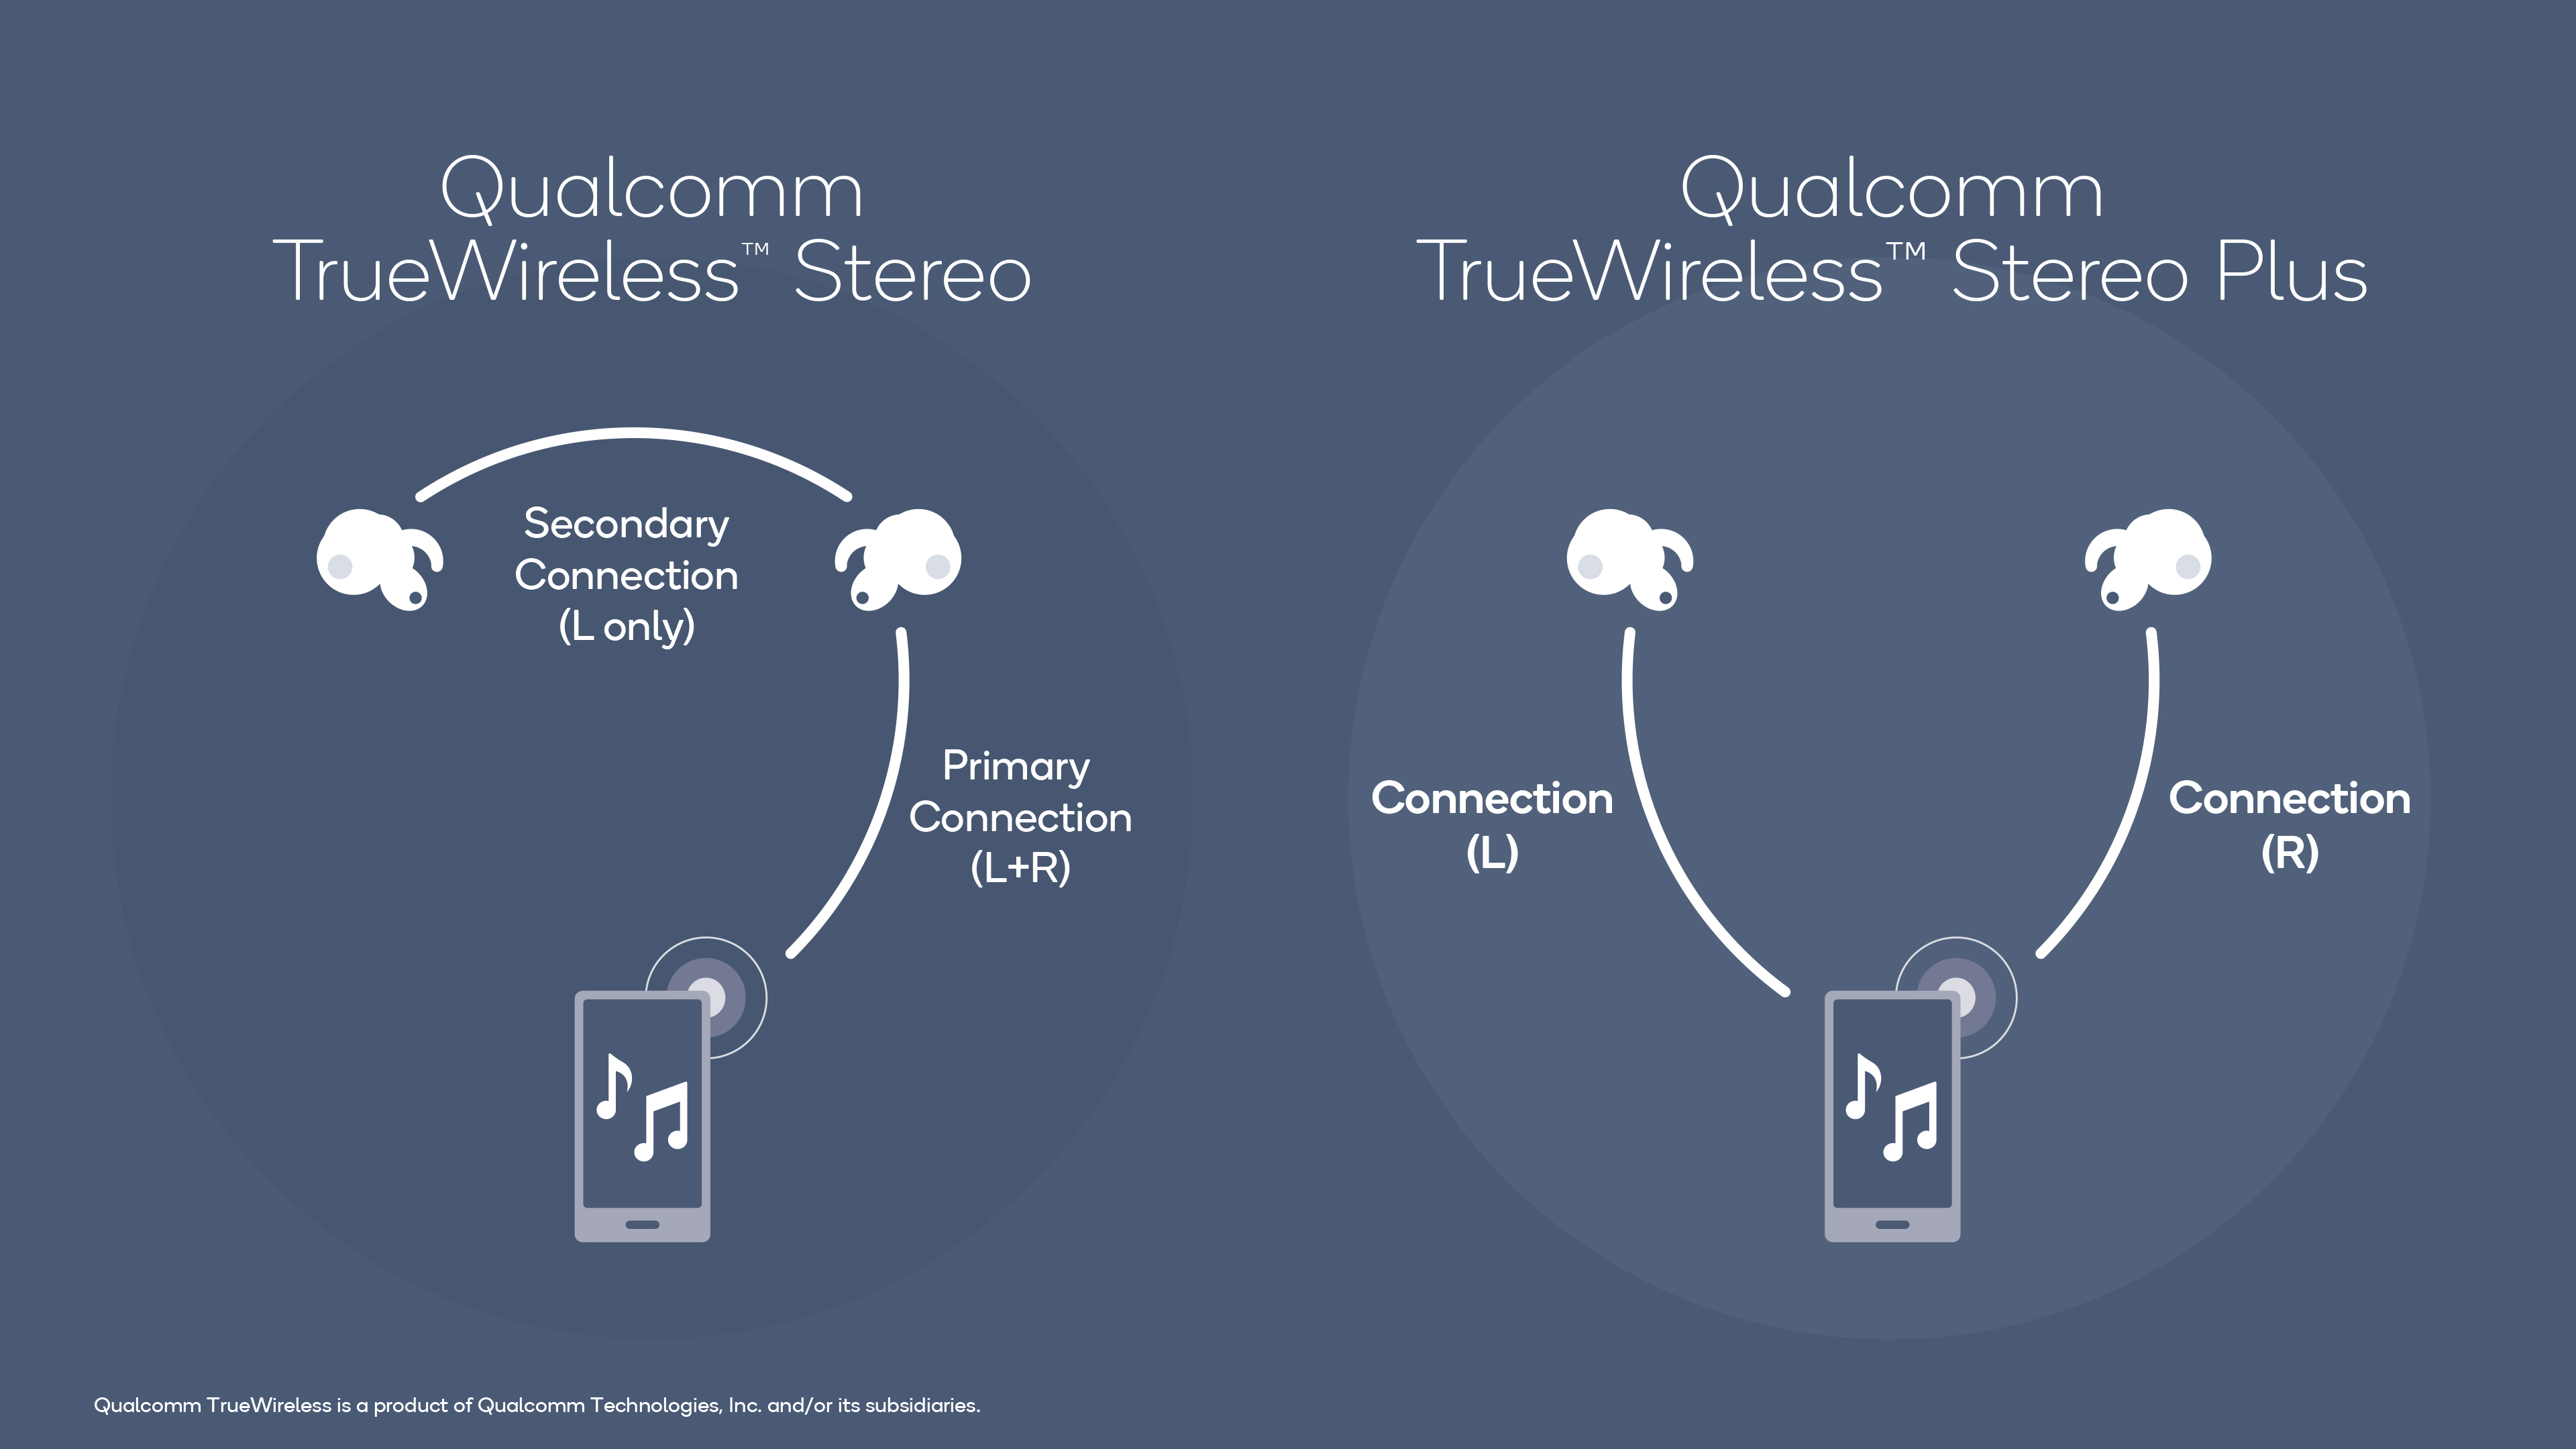 TrueWireless Stereo Plus